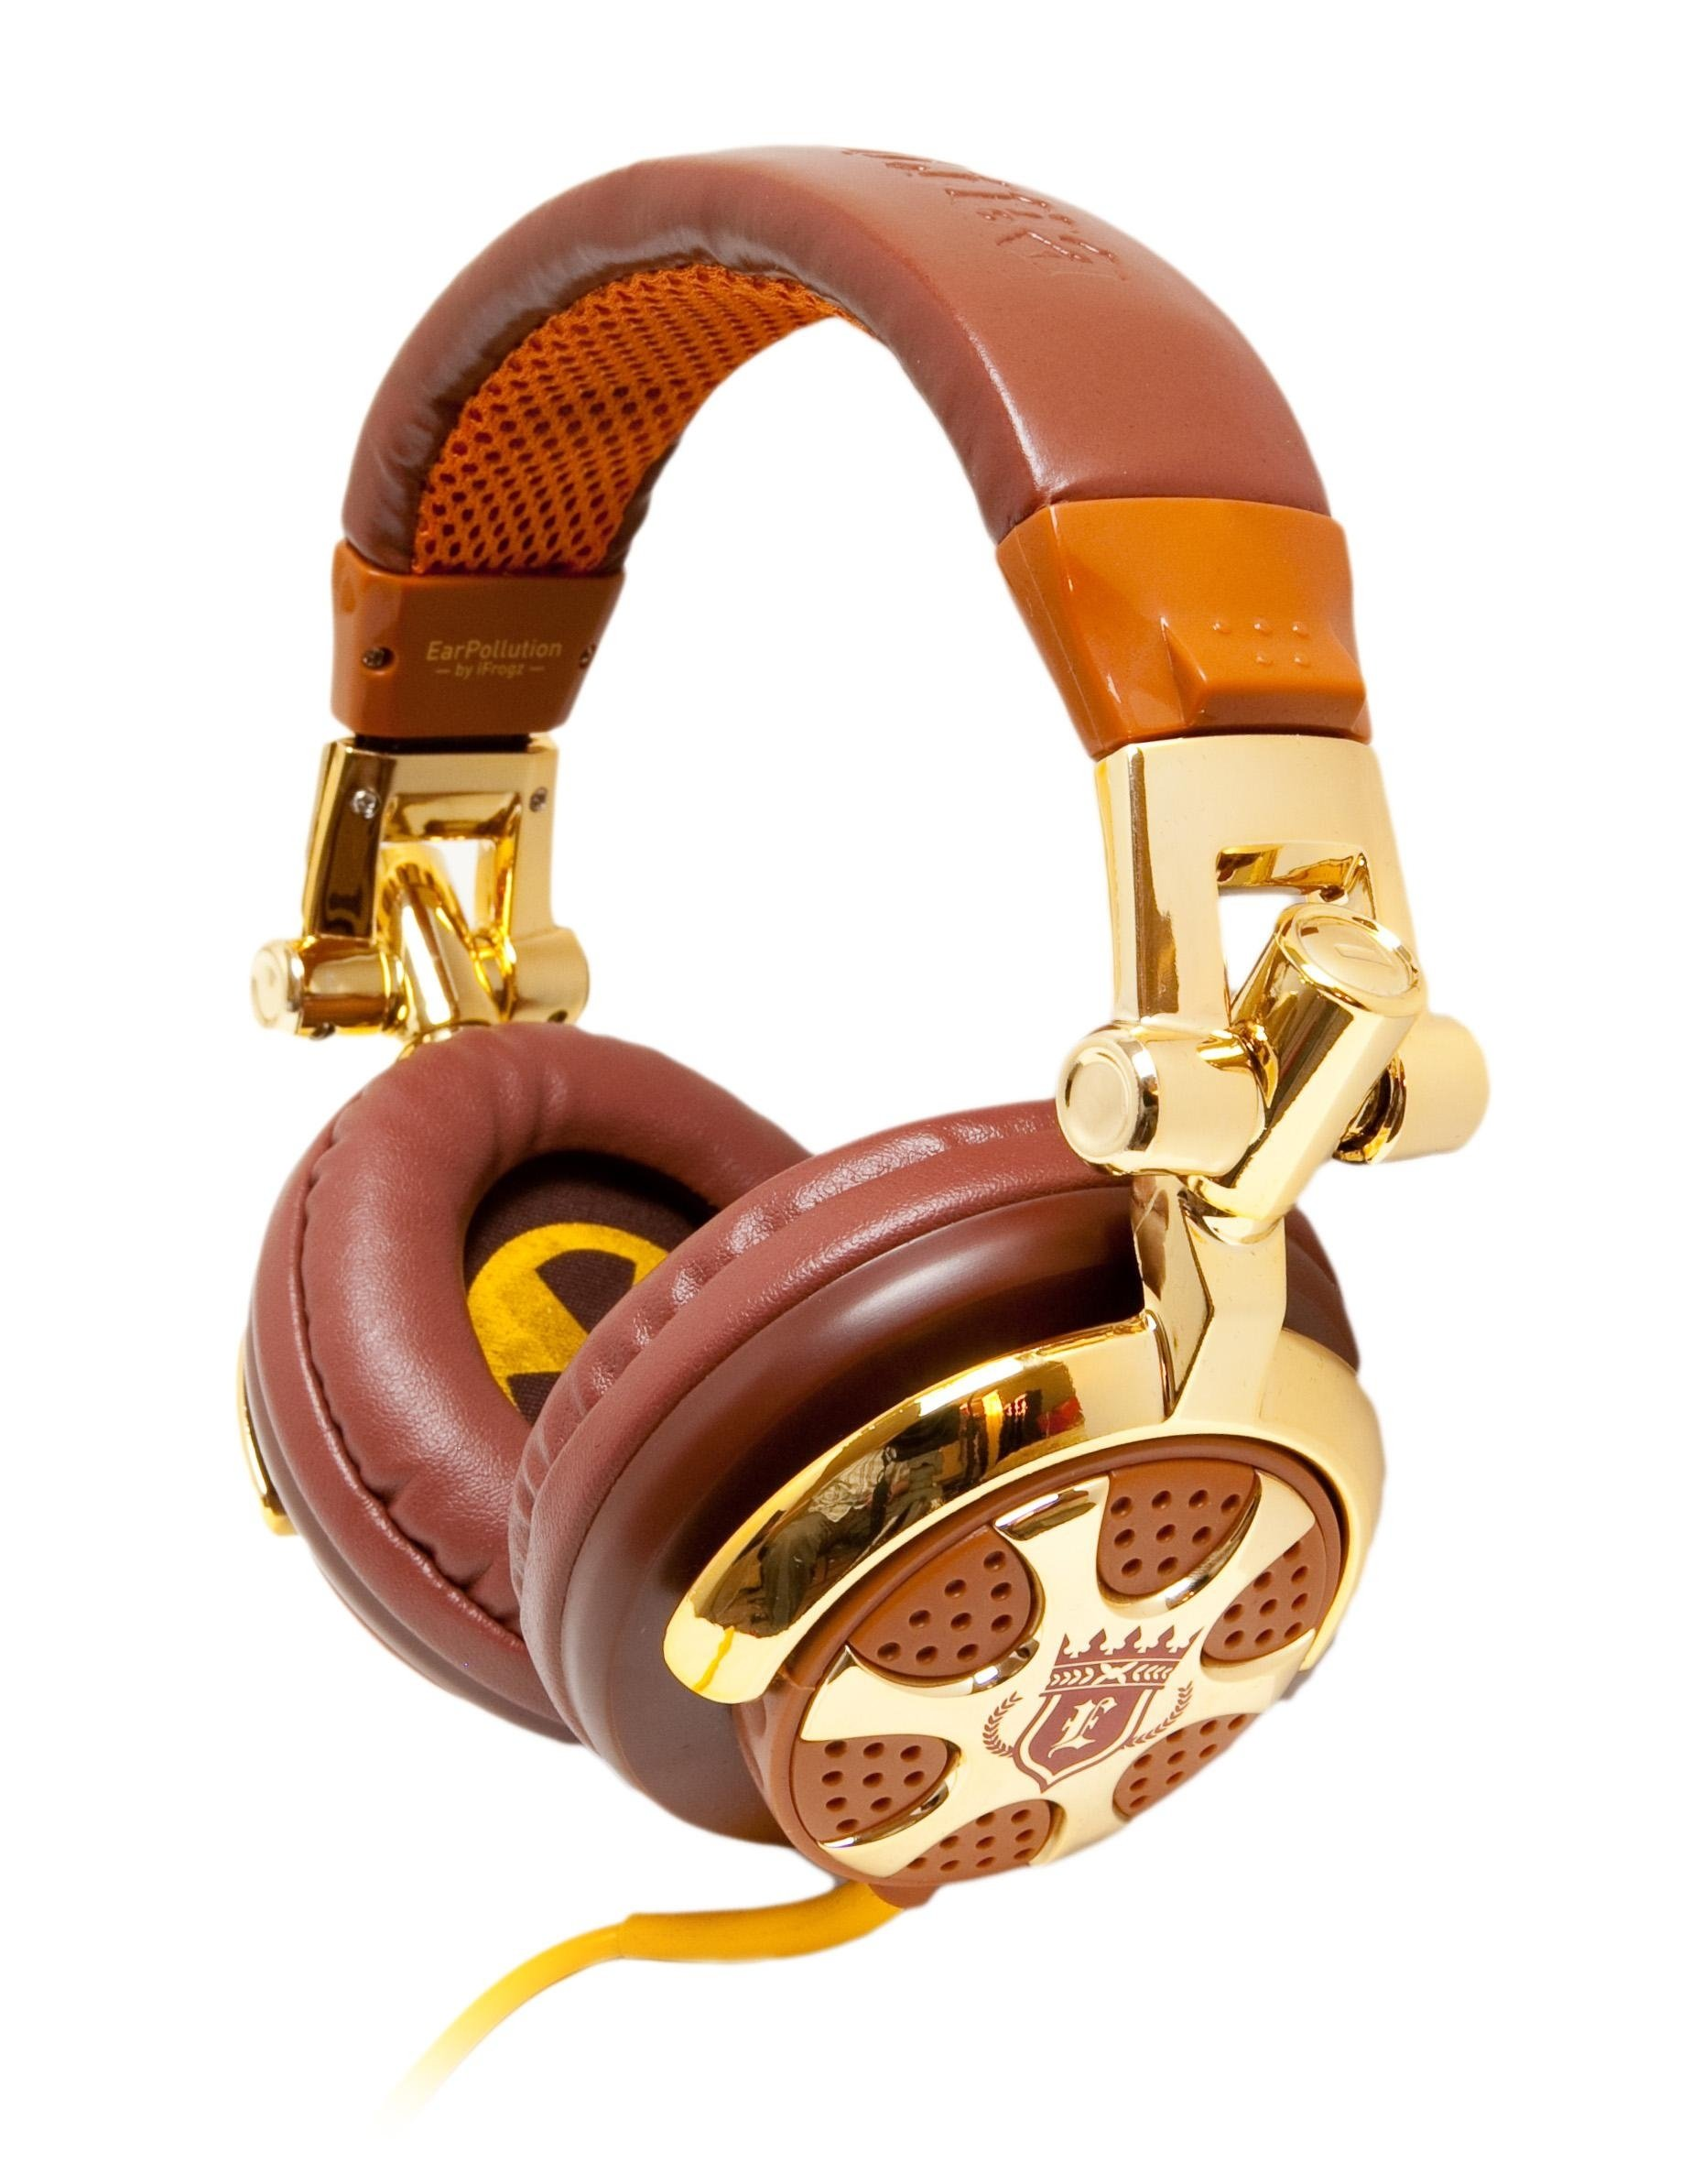 iFrogz EarPollution DJ-Style Billionaire Headphones for all Smartphones, Tablets and Audio devices